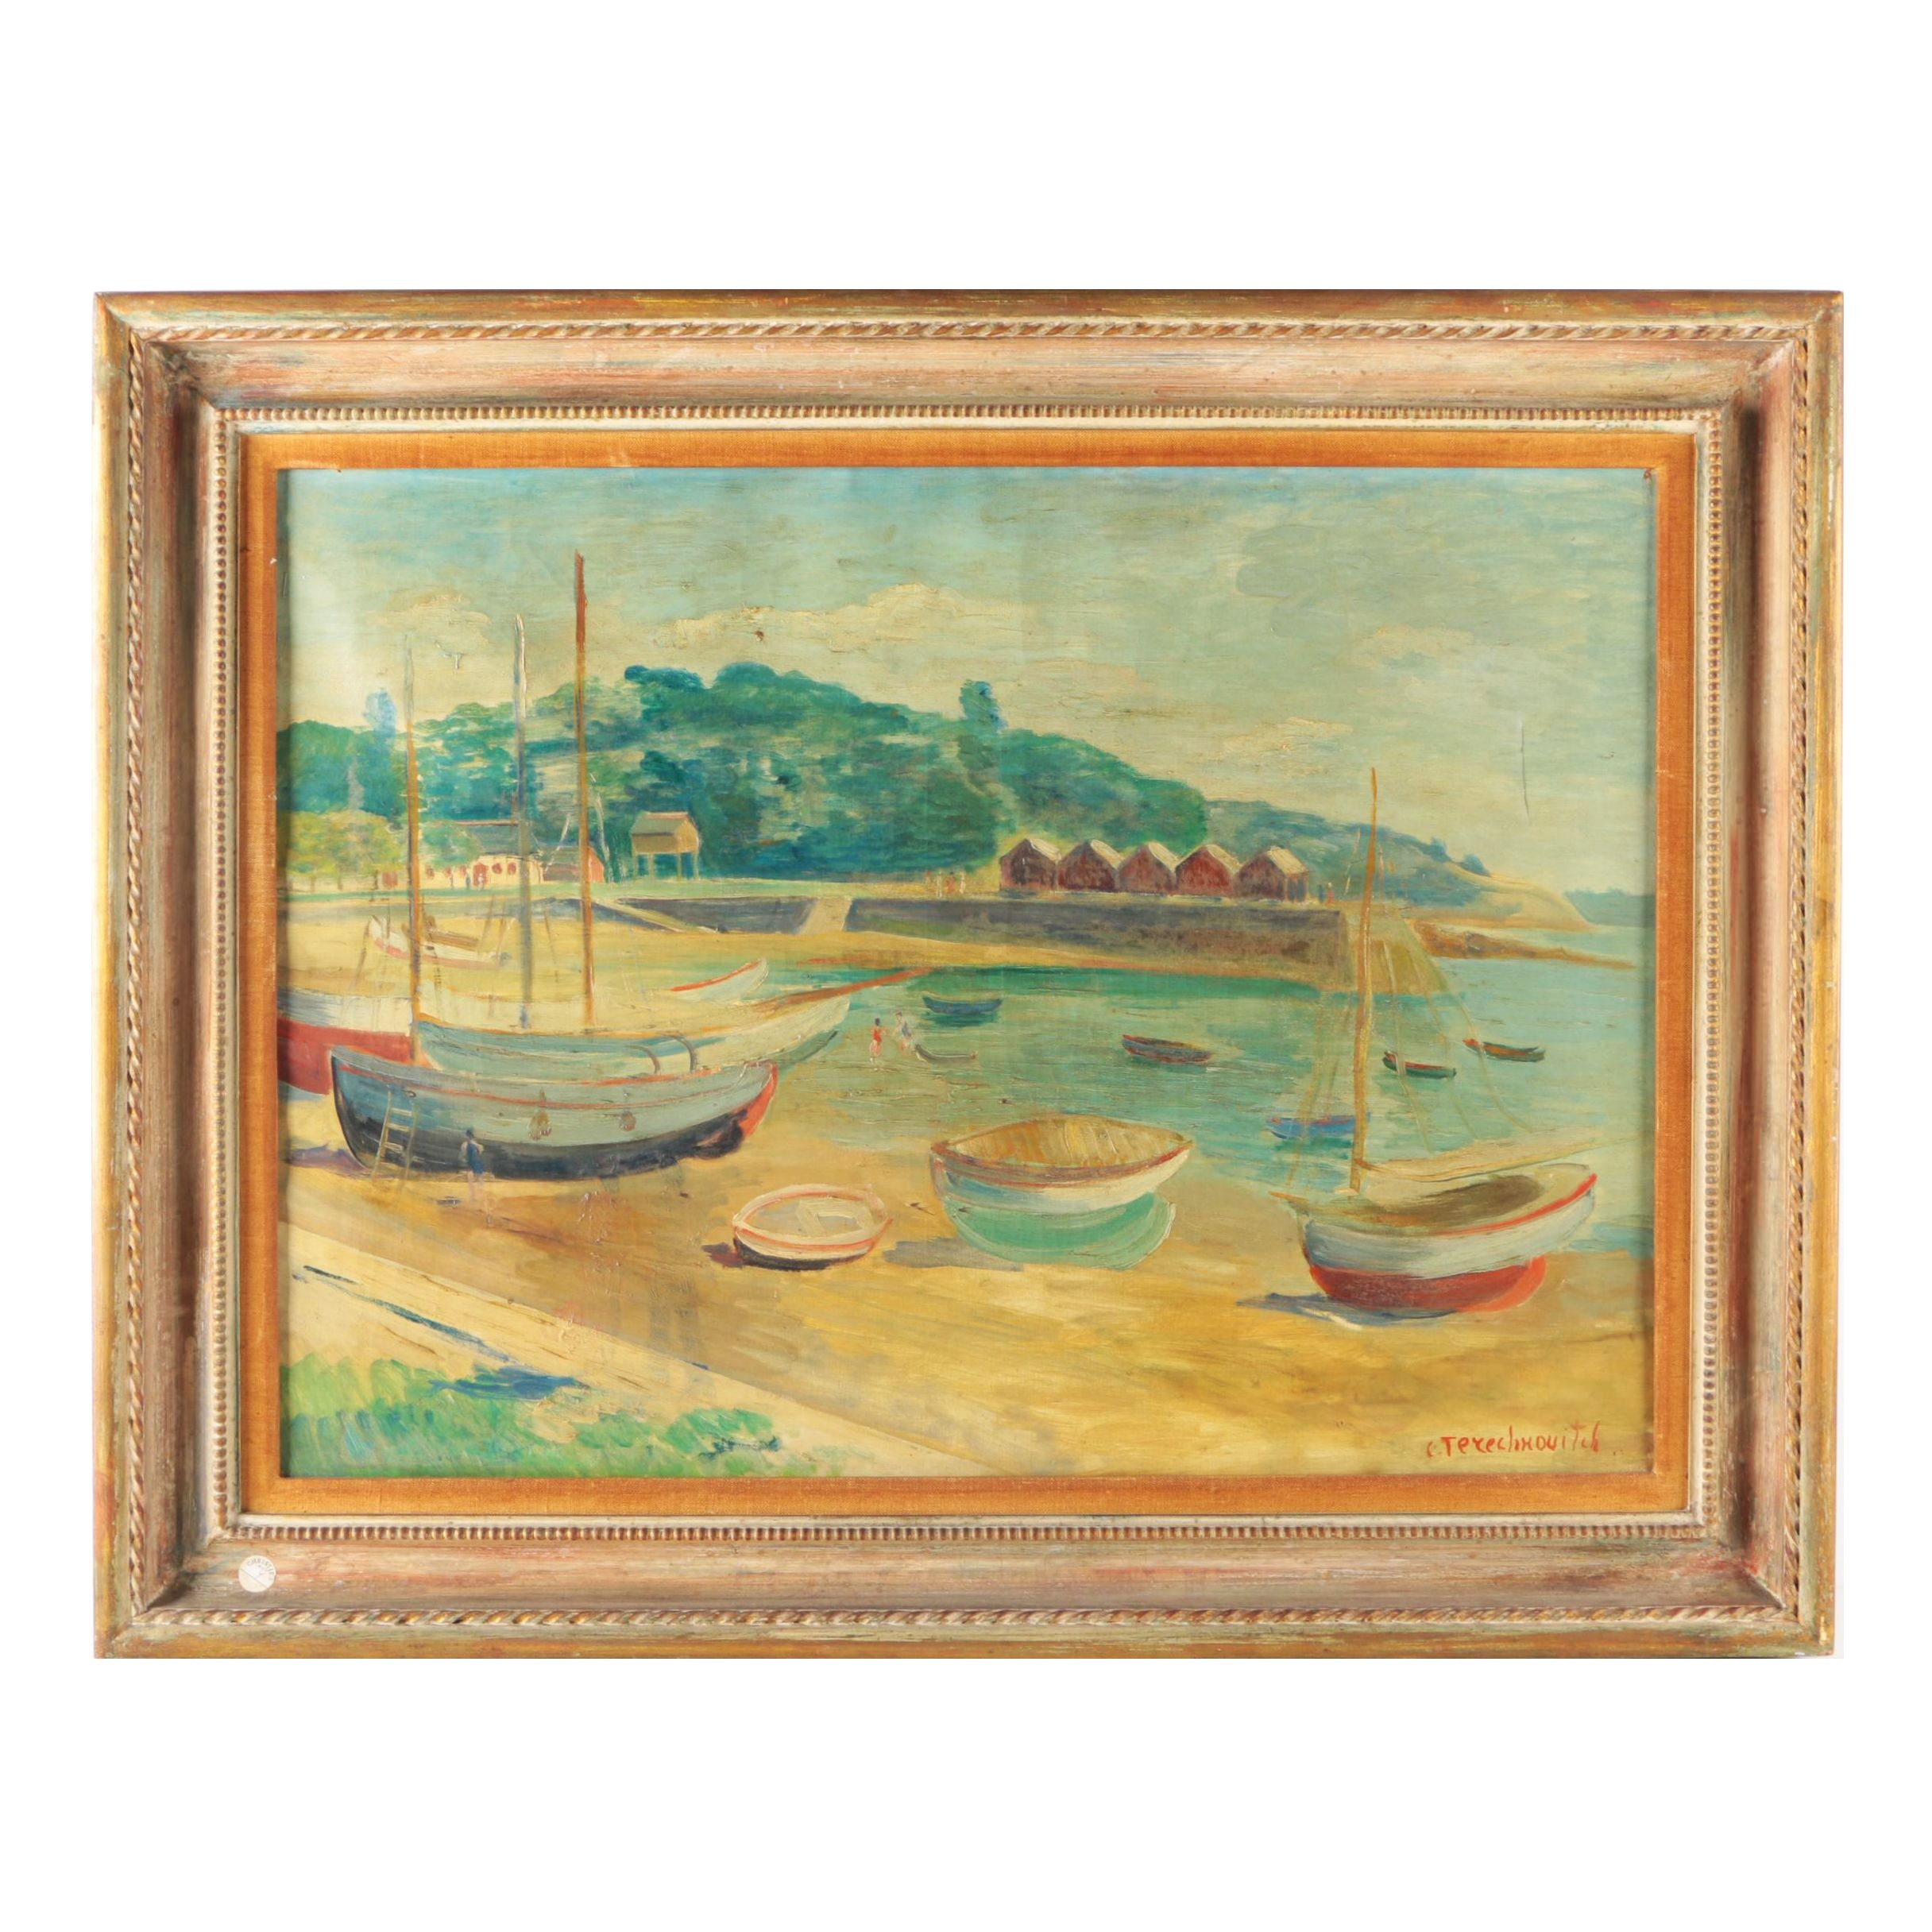 Constantin Terechkovitch Oil Painting on Canvas of Harbor Scene